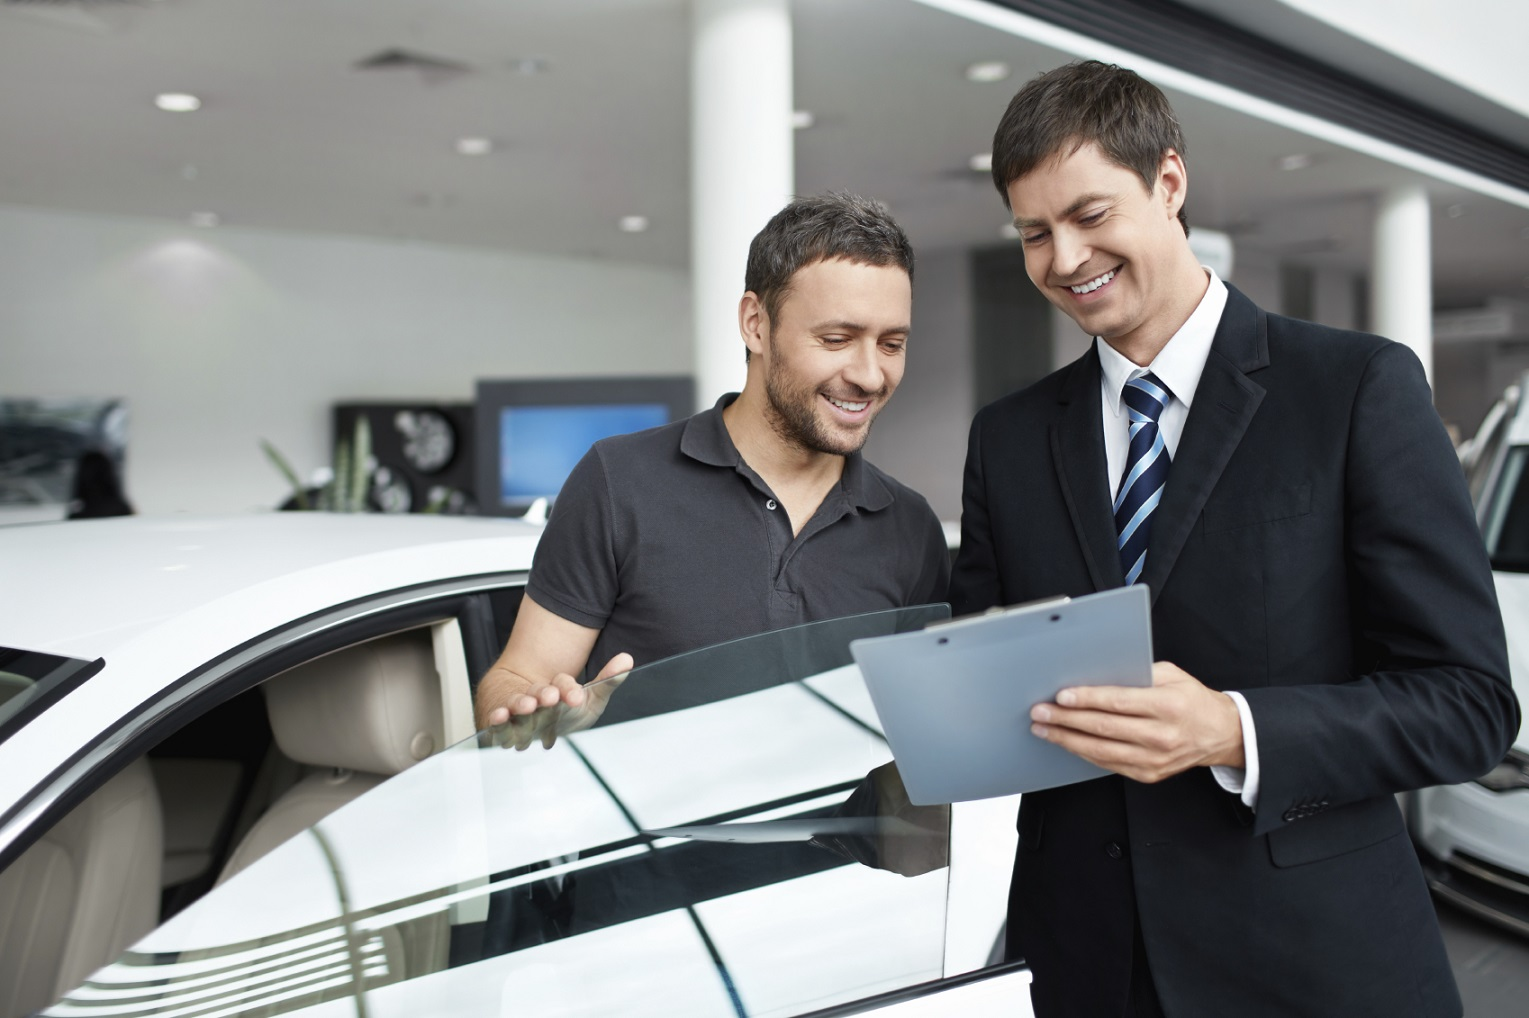 Visit Sweeney Auto Group Today!